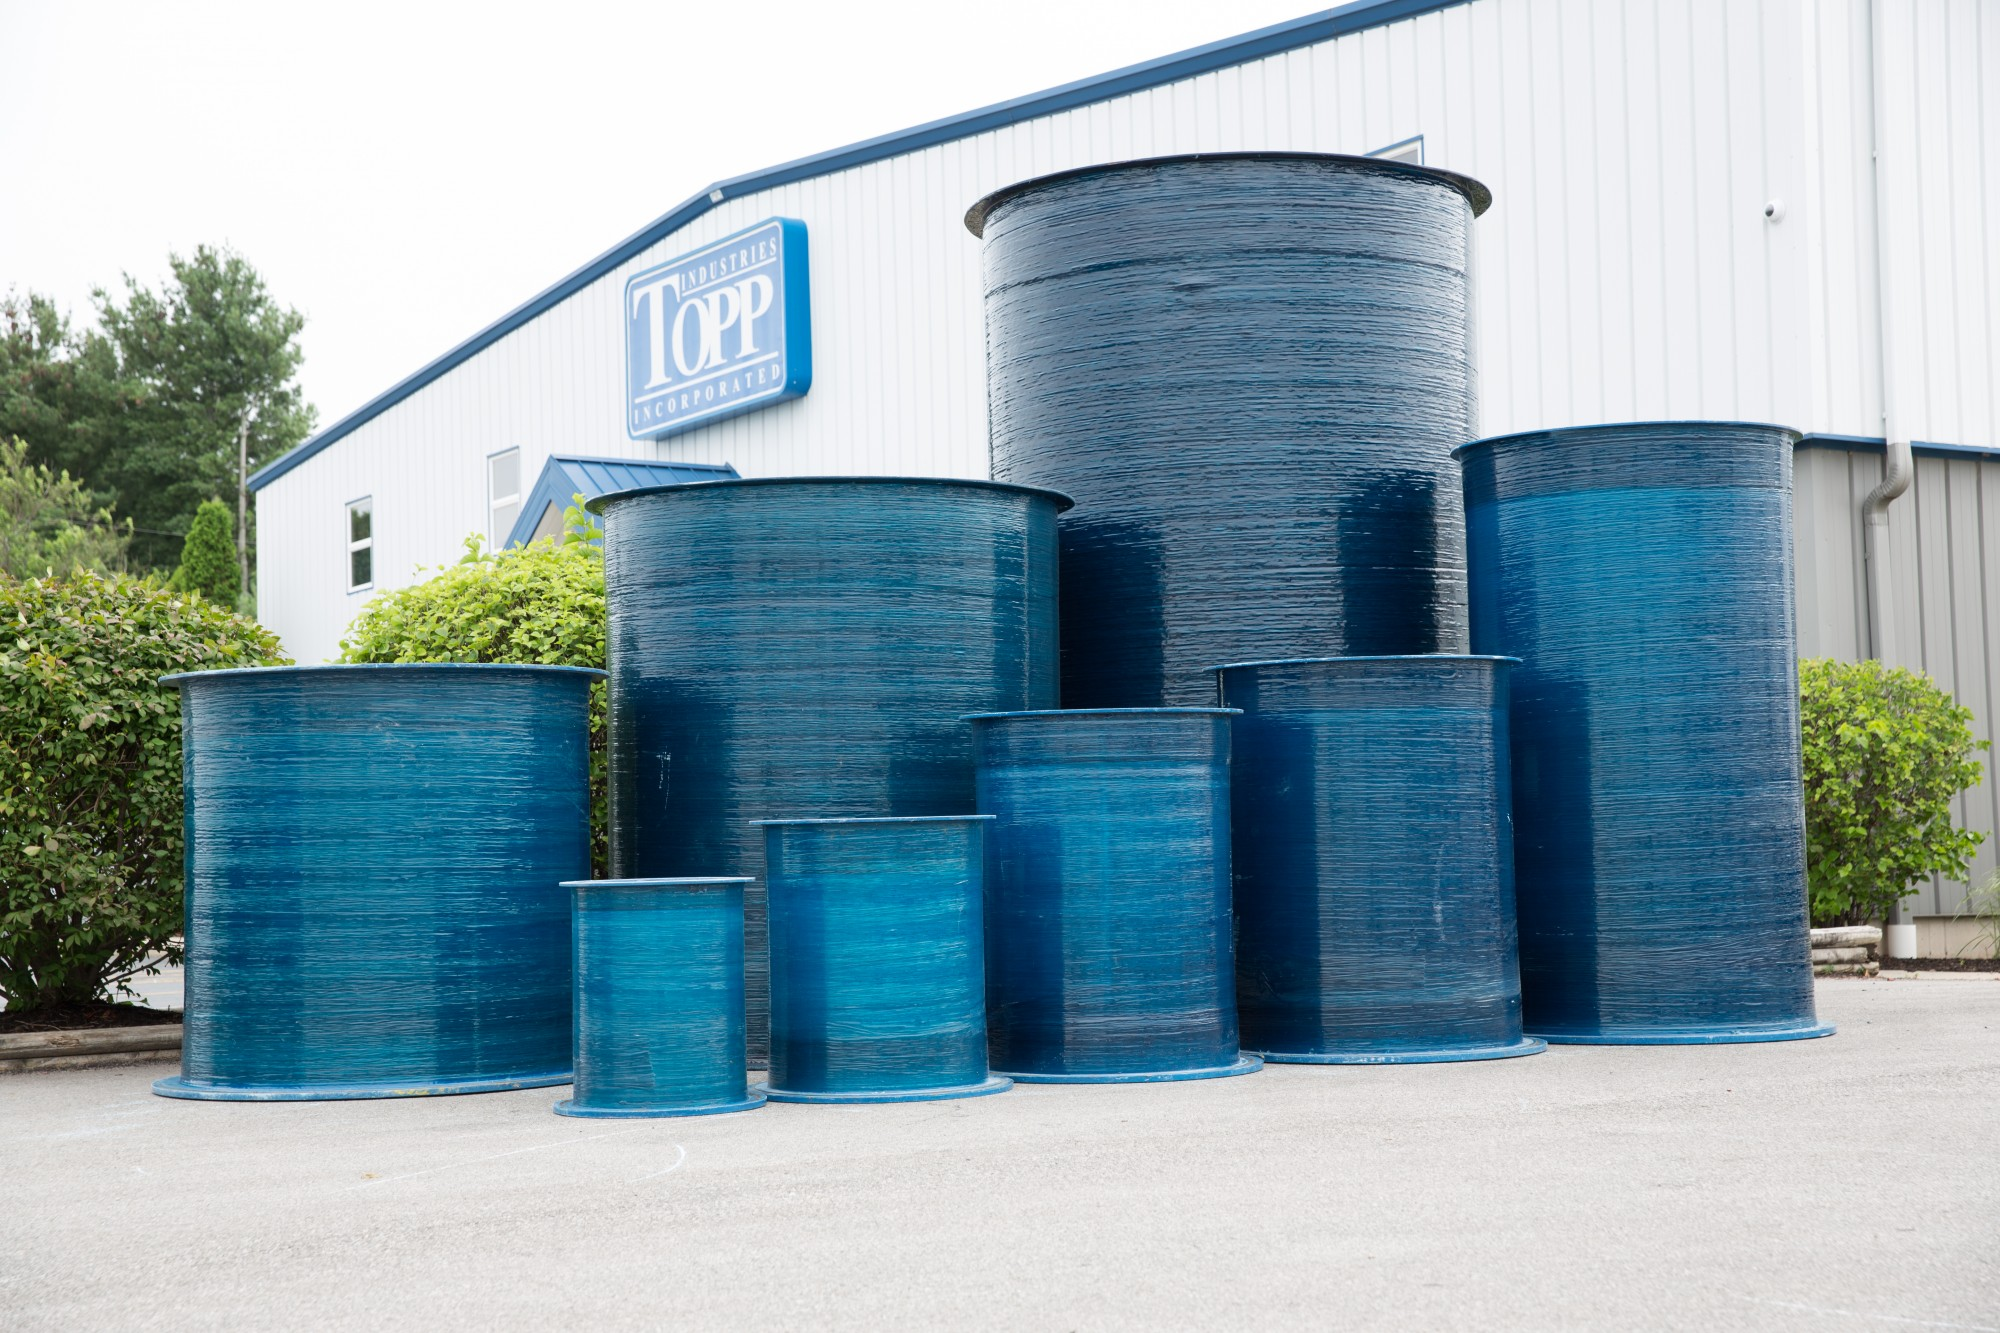 Fiberglass Basins, Covers and Accessories - TOPP Industries Inc